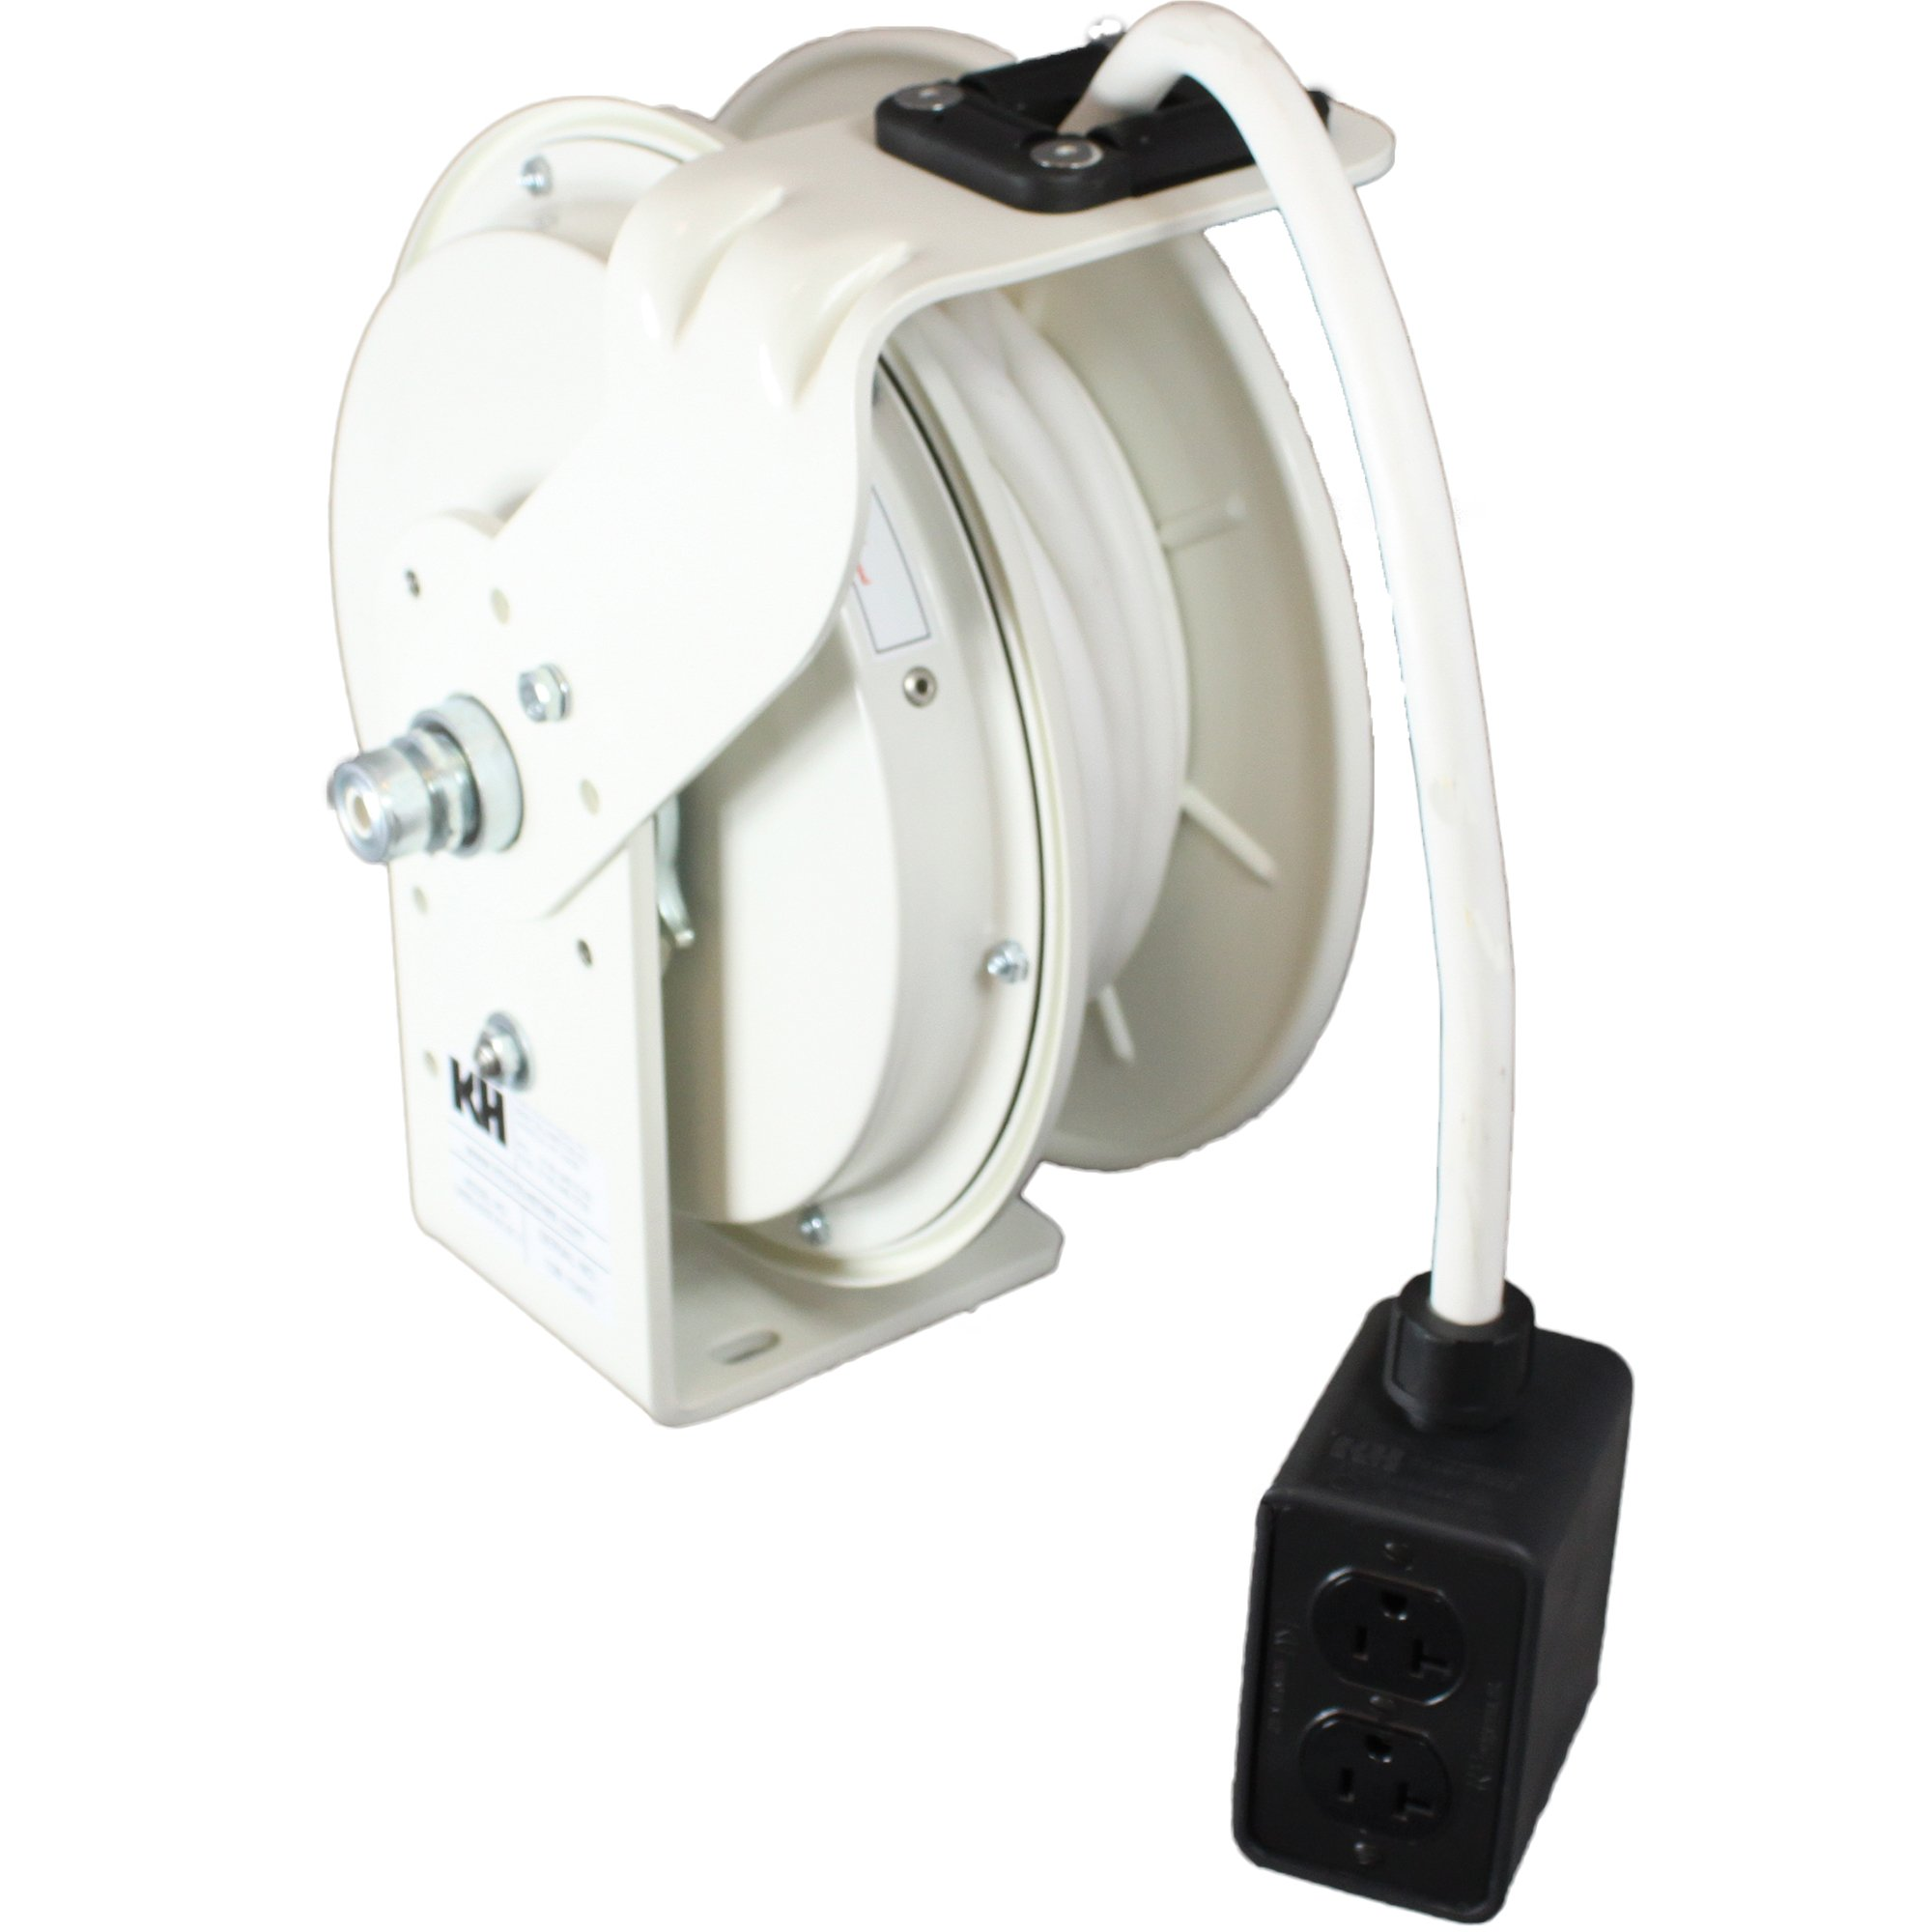 KH Industries RTB Series ReelTuff Power Cord Reel, 12/3 SJOW White Cable and Four Receptacle Outlet Box, 20 Amp, 25' Length, White Powder Coat Finish